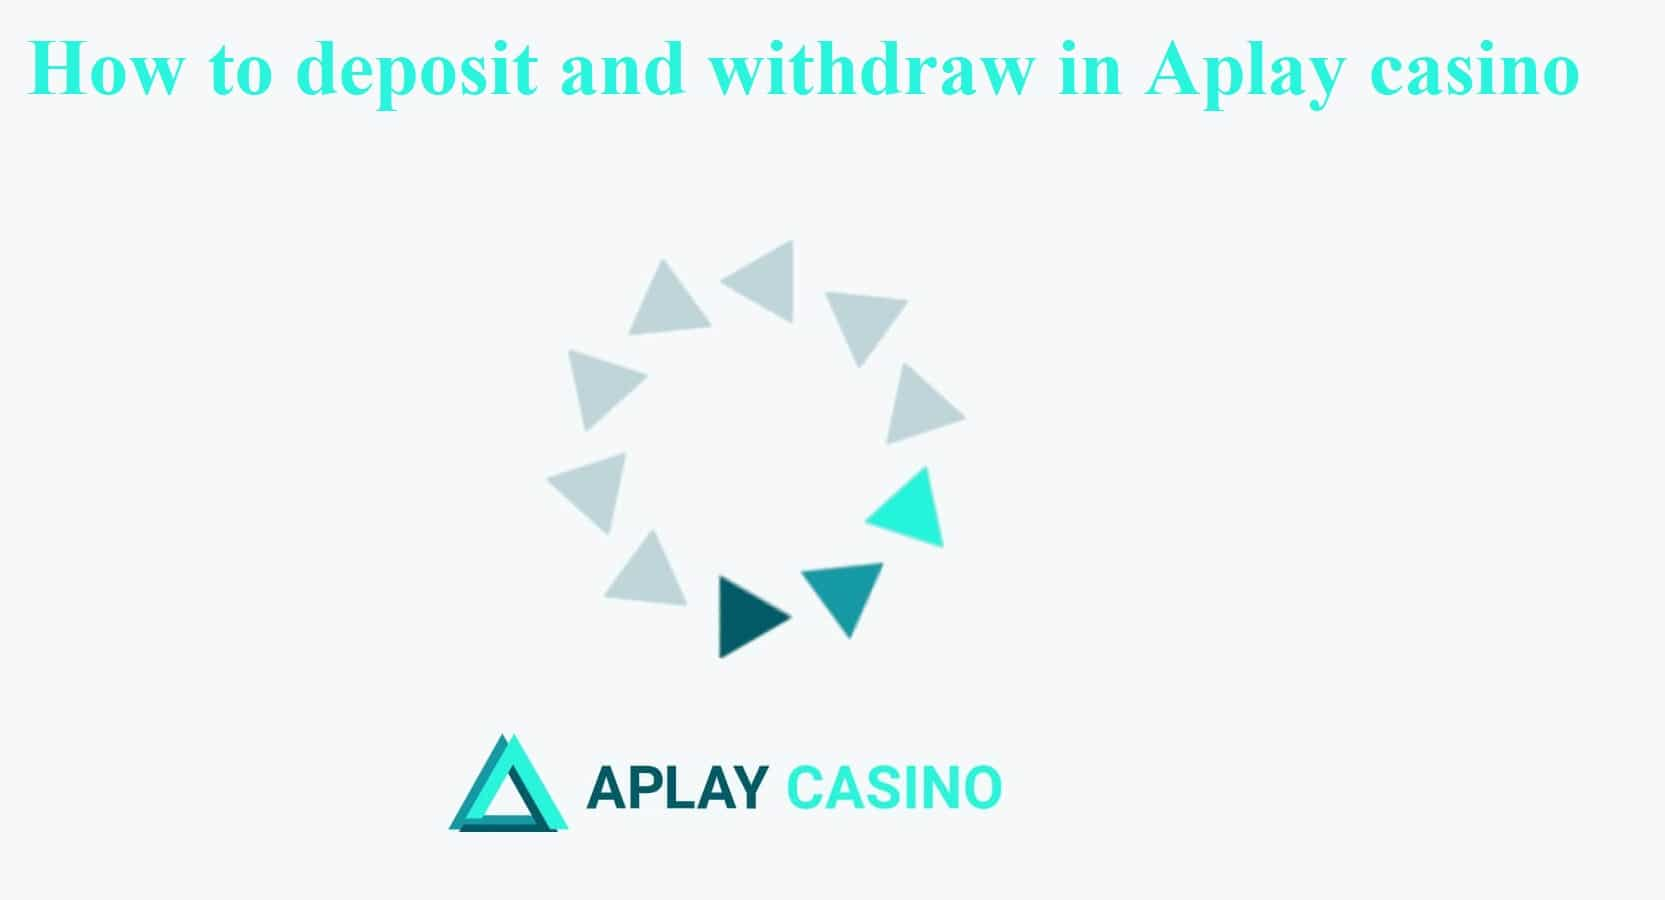 How to deposit and withdraw in Aplay casino